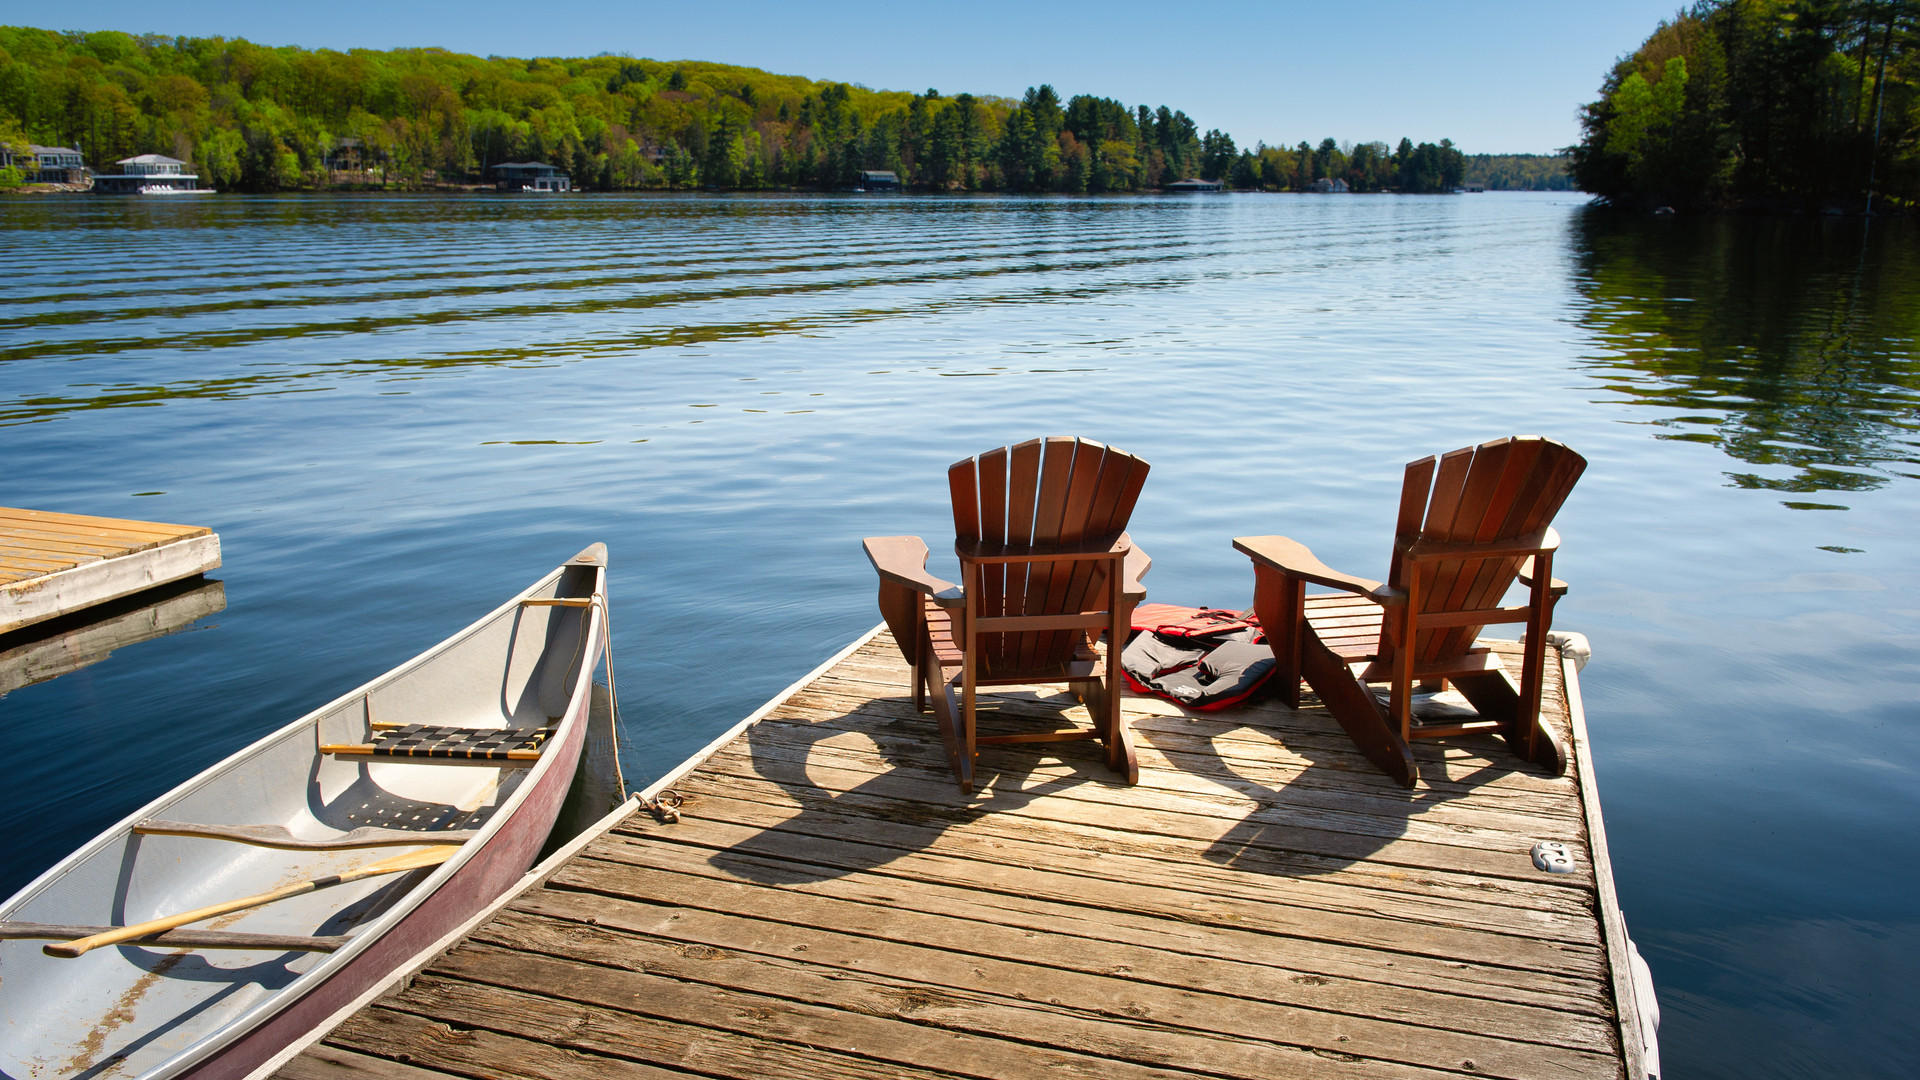 Two Adirondack chairs on a wooden dock f